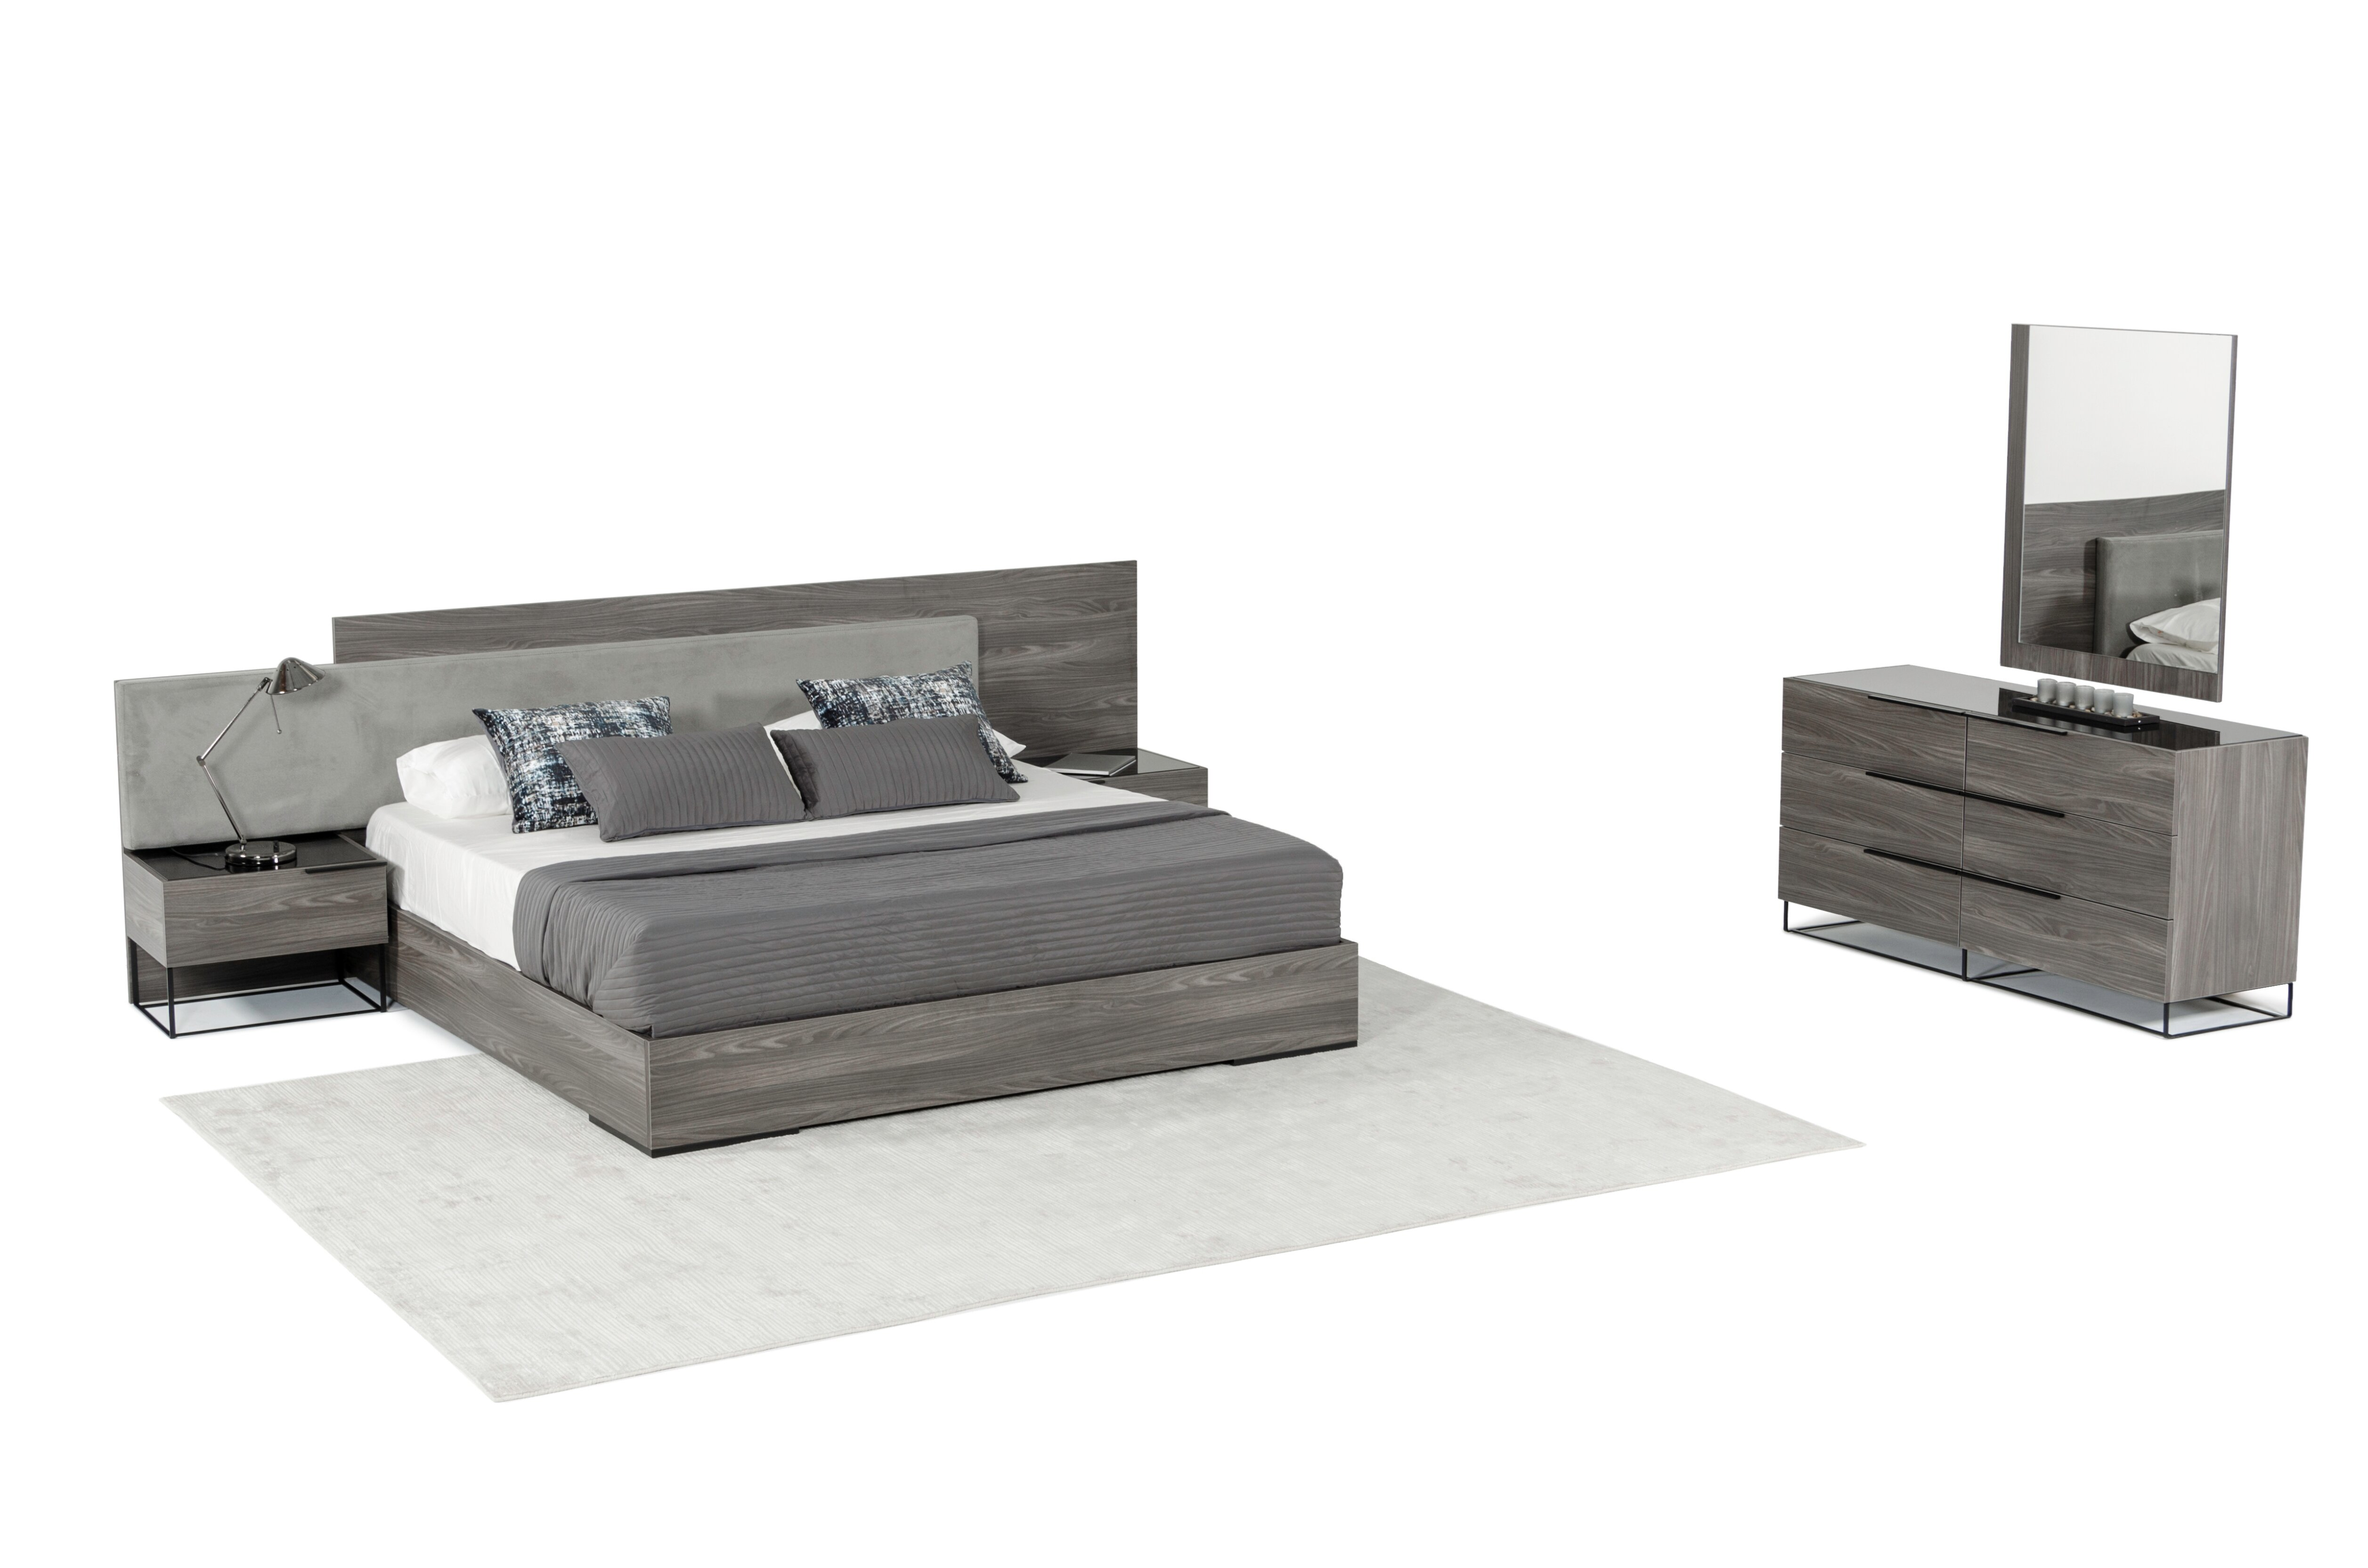 Mraz Platform 3 Piece Bedroom Set